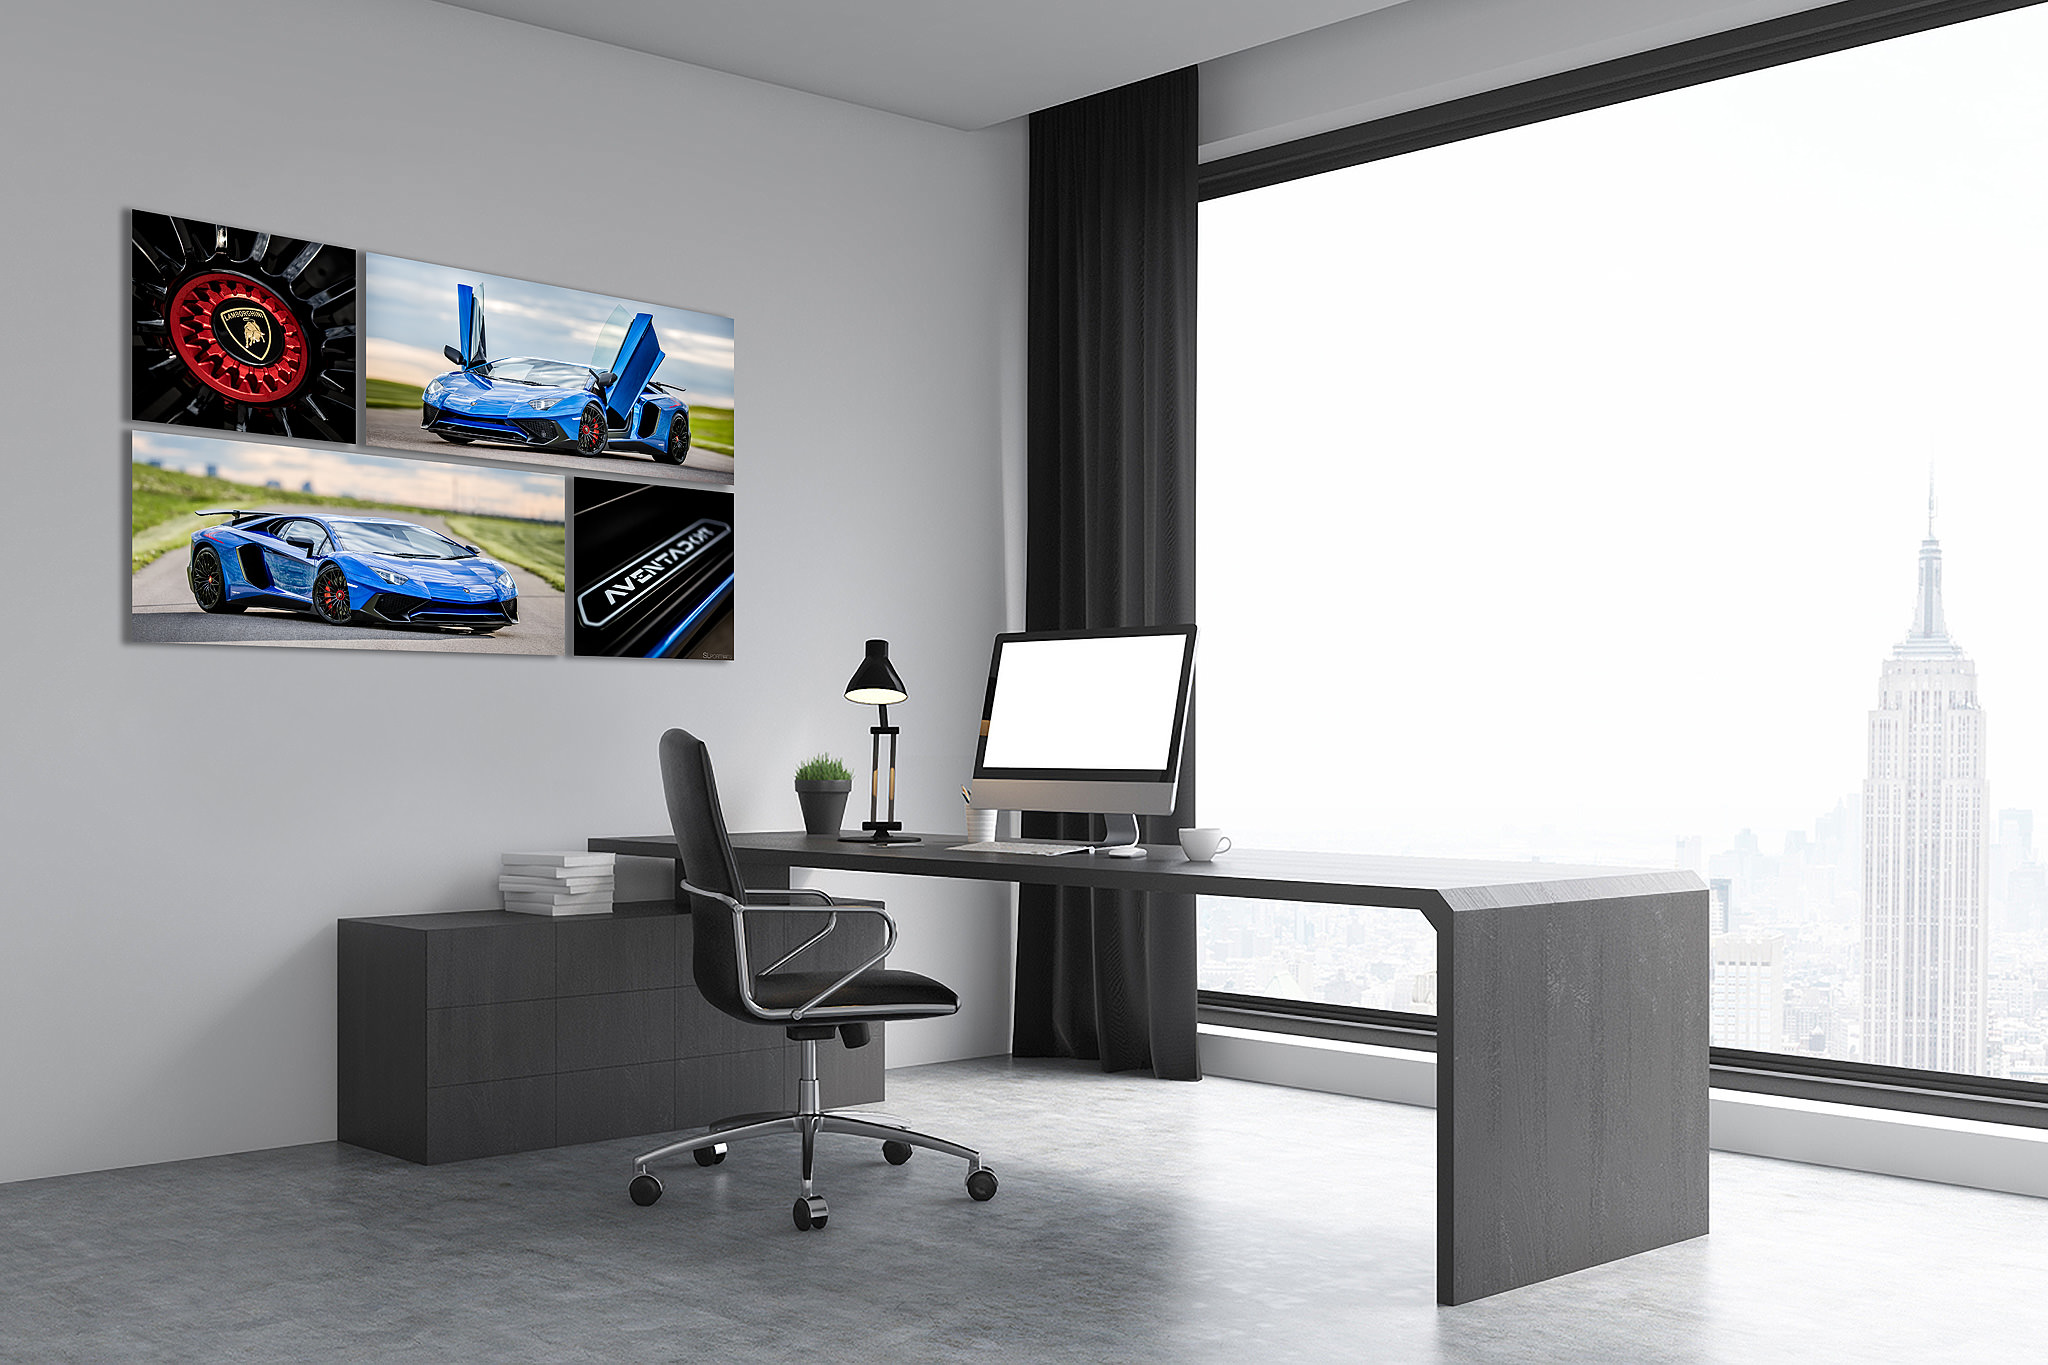 metallic blue Lamborghini aventador wall art collection on the wall in an office